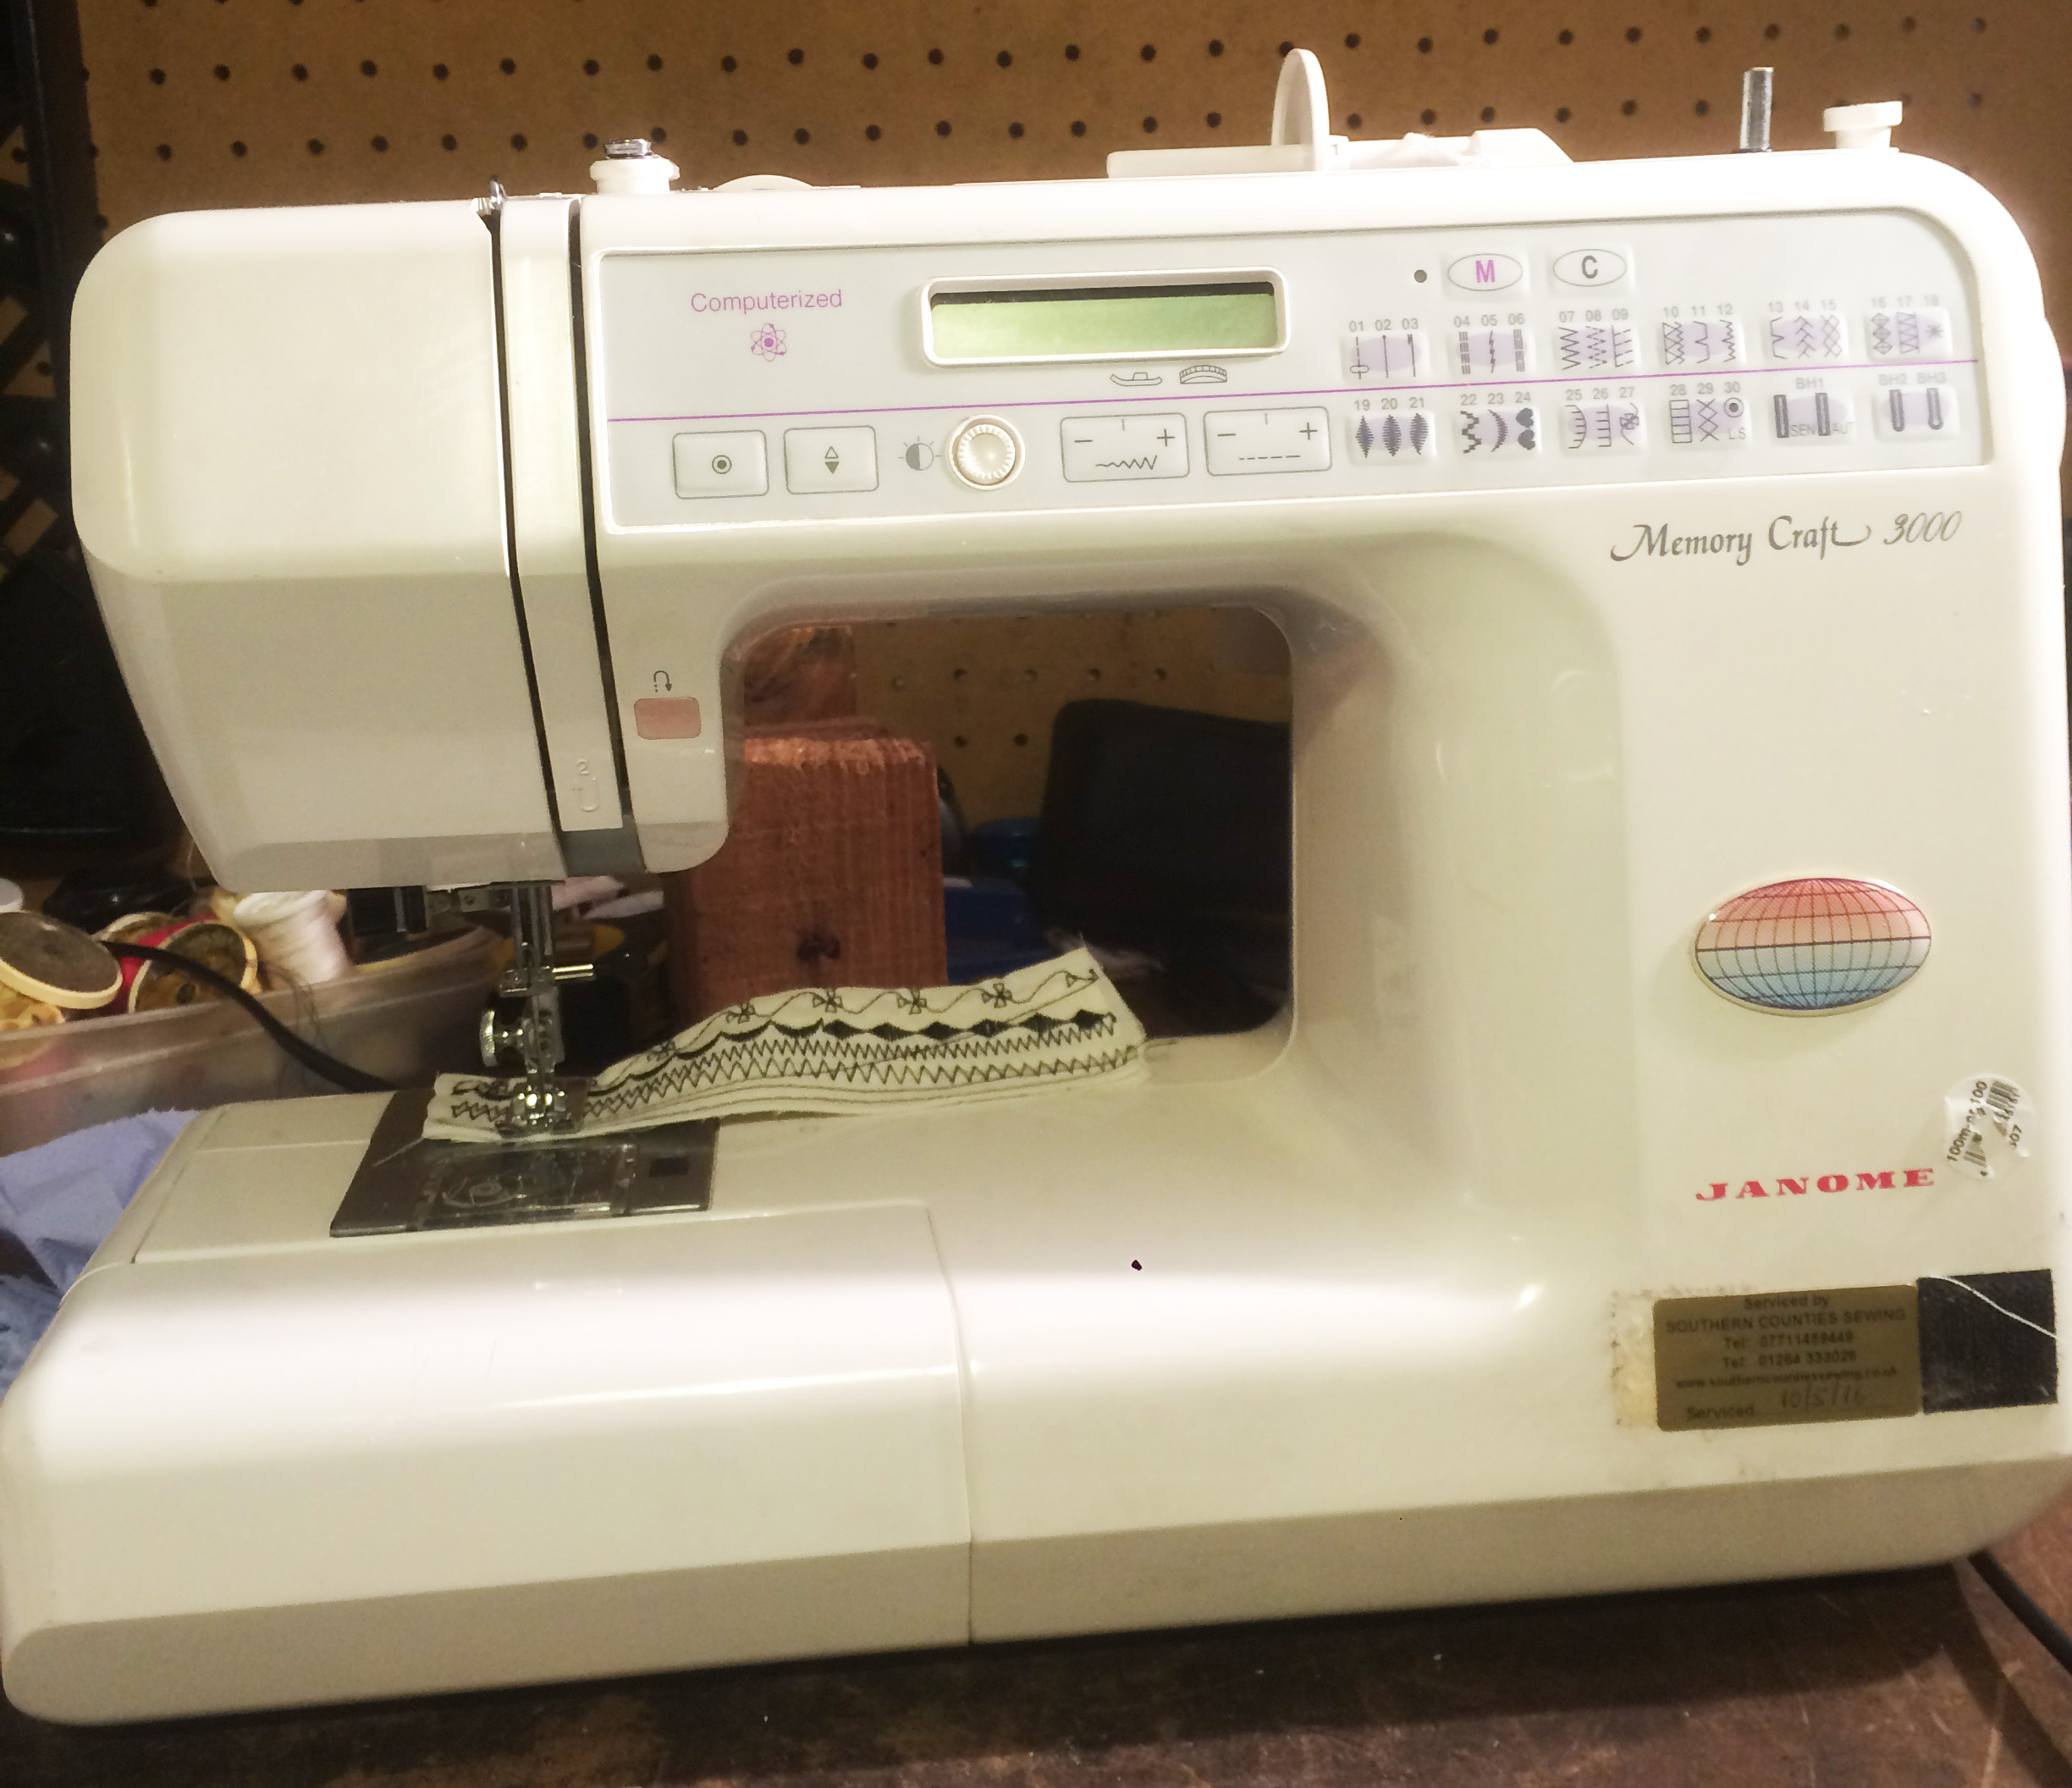 Janome domestic sewing machine service and repair for Janome memory craft 3000